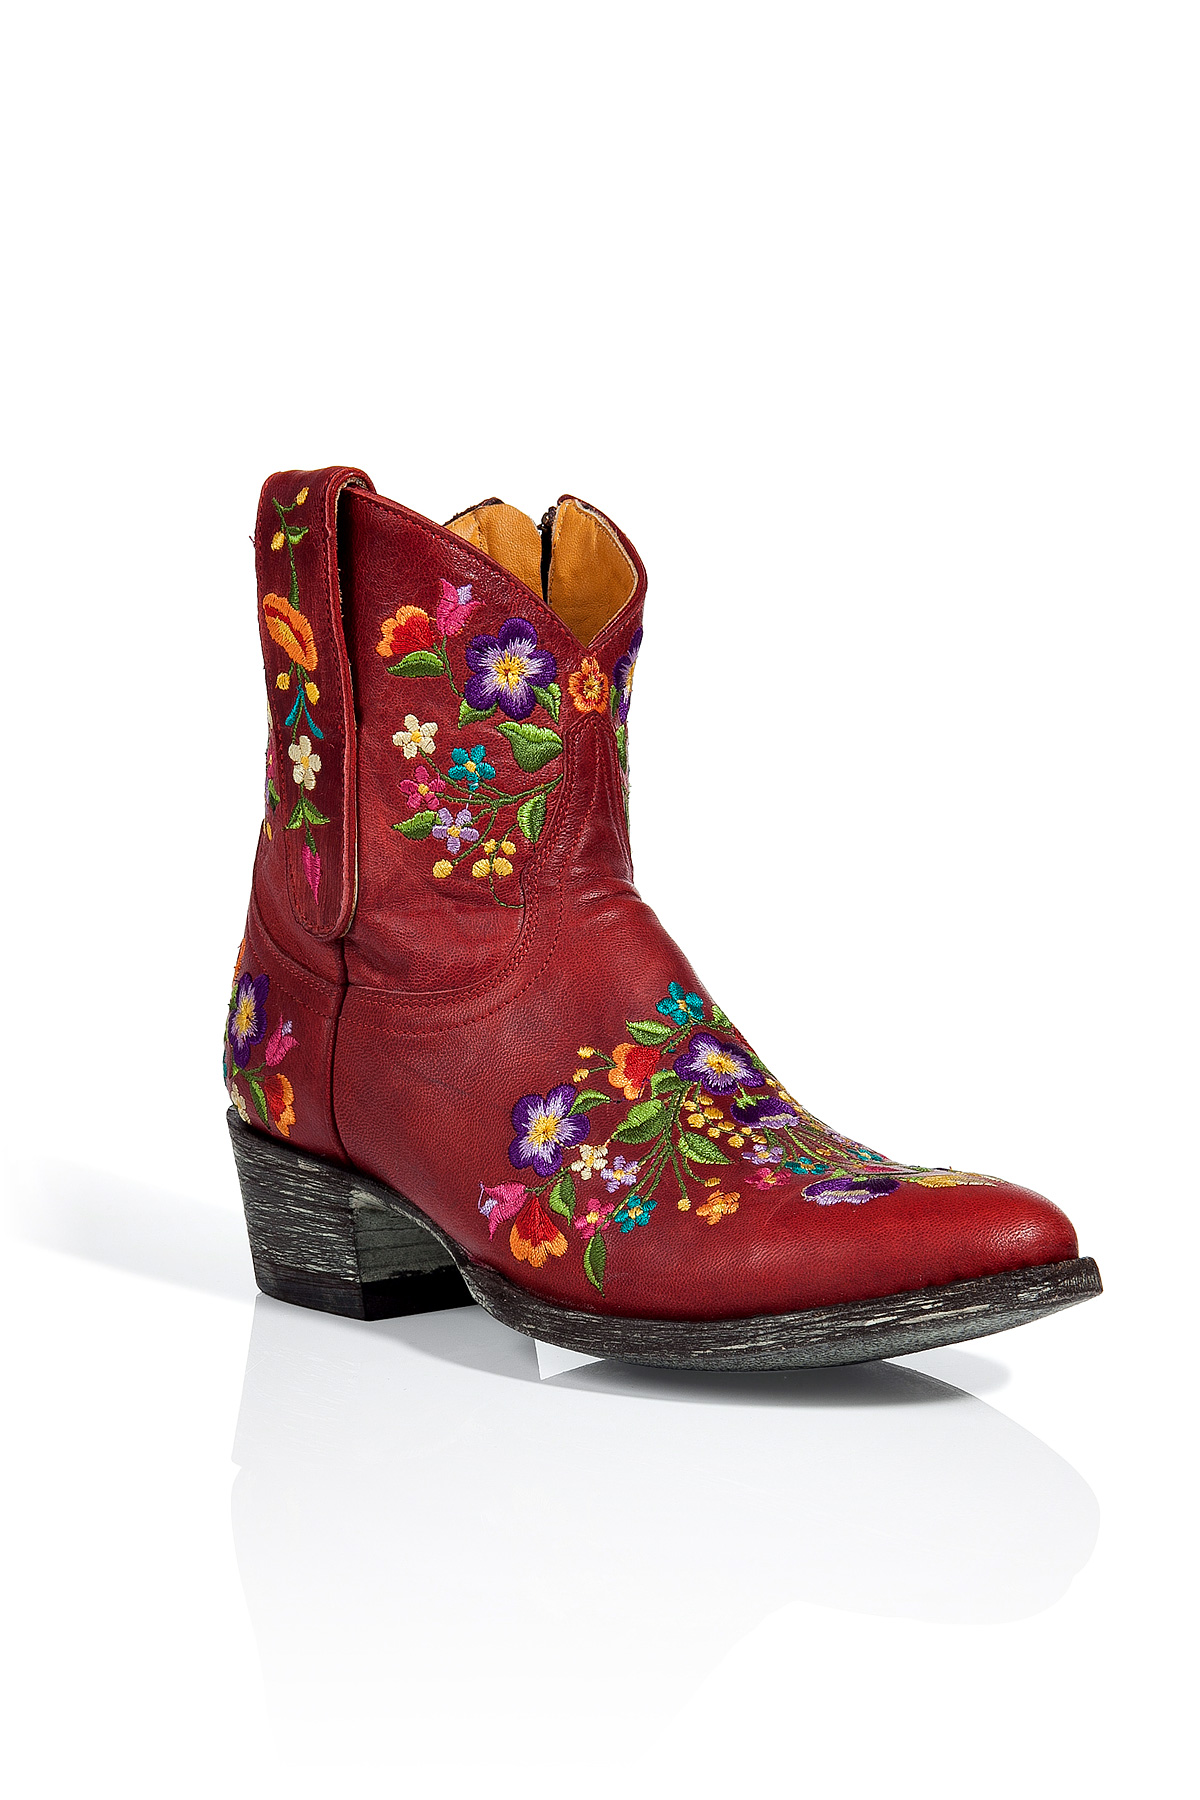 Mexicana Fire Red Embroidered Ankle Boots Lyst